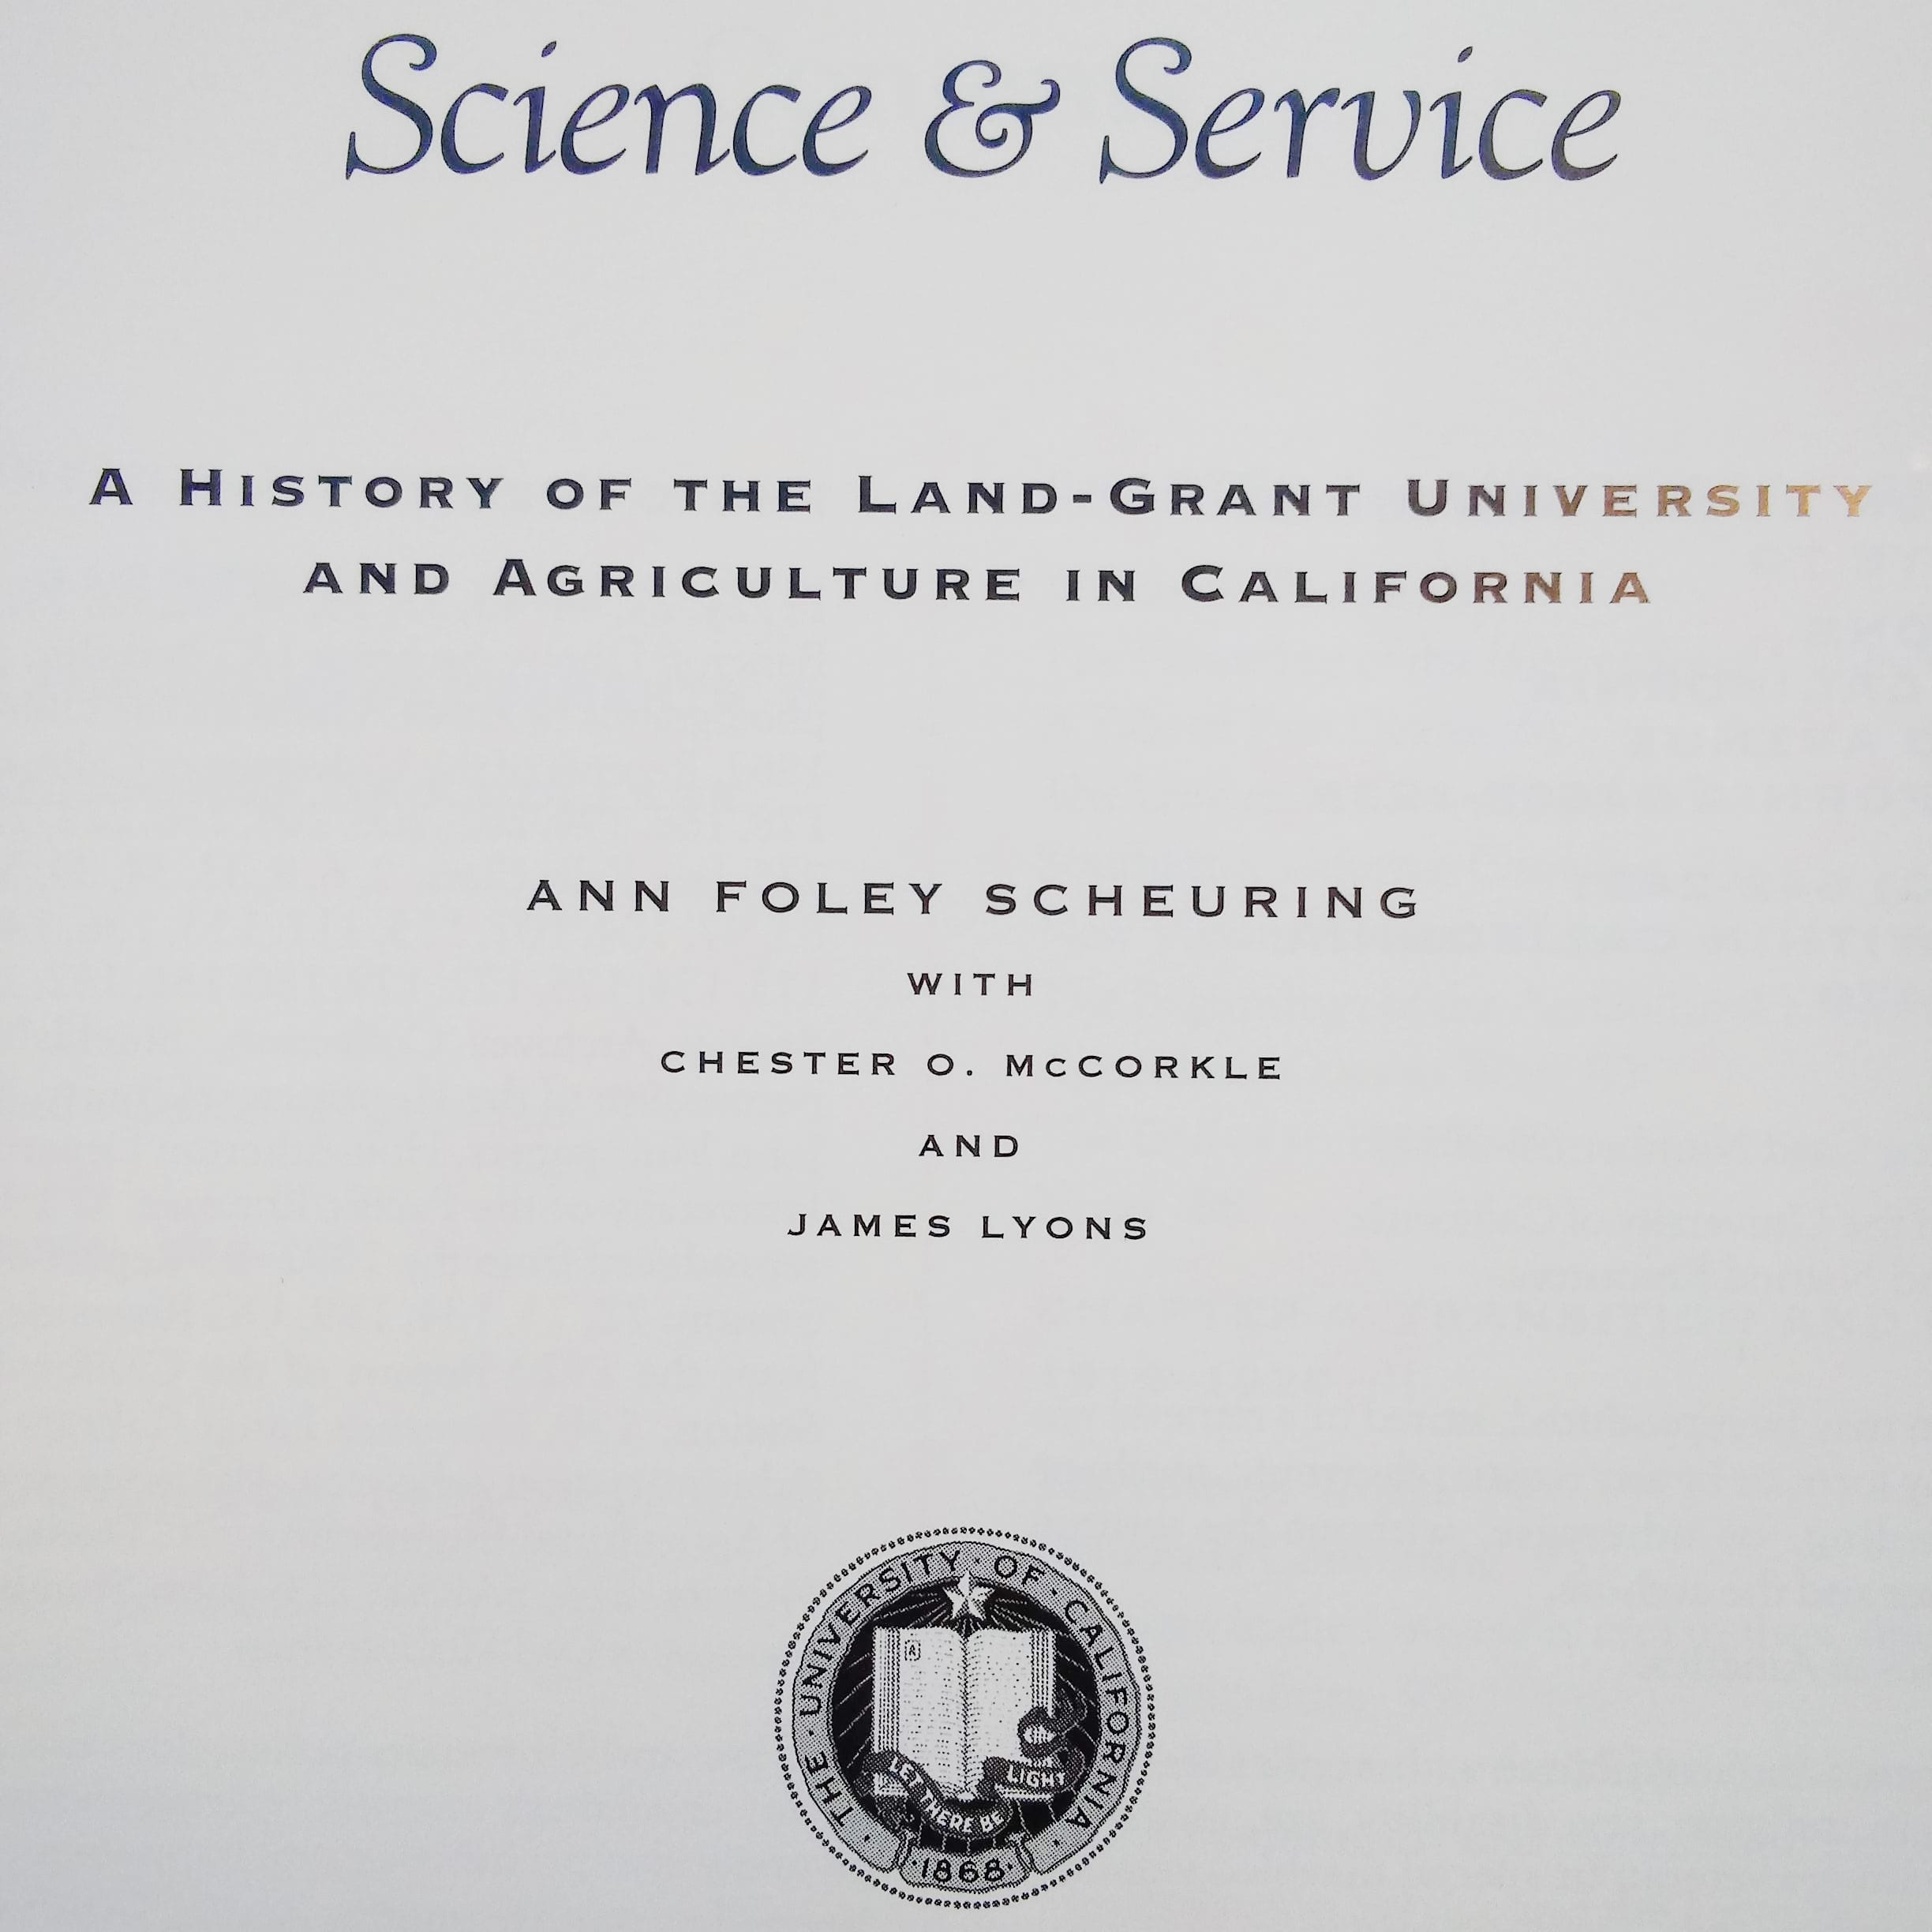 Science and Service by Ann Foley Scheuring, 1995